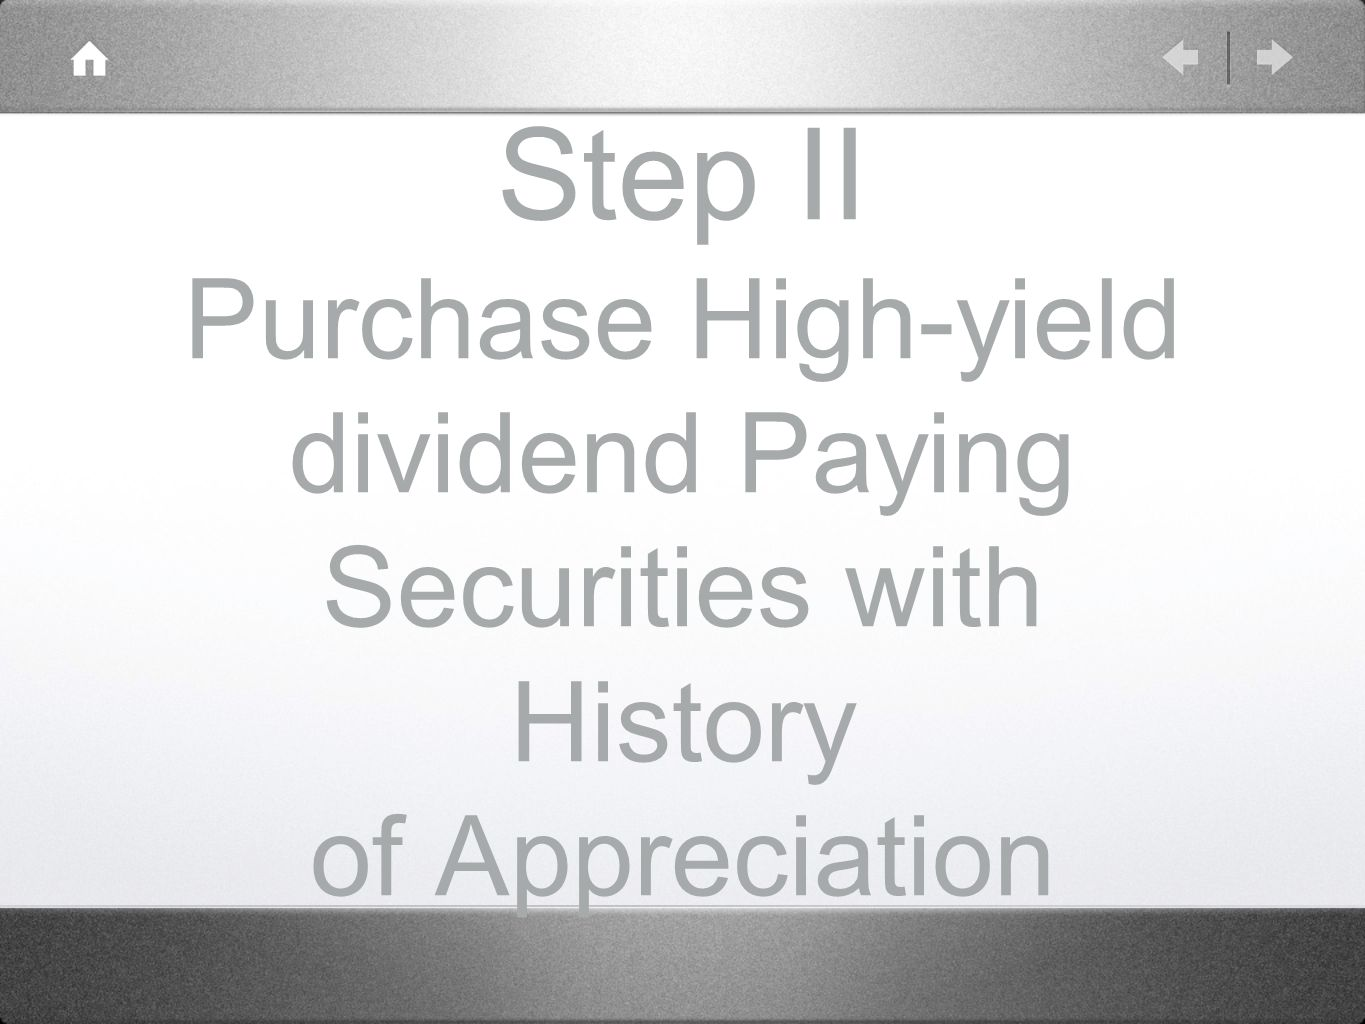 Step II Purchase High-yield dividend Paying Securities with History of Appreciation